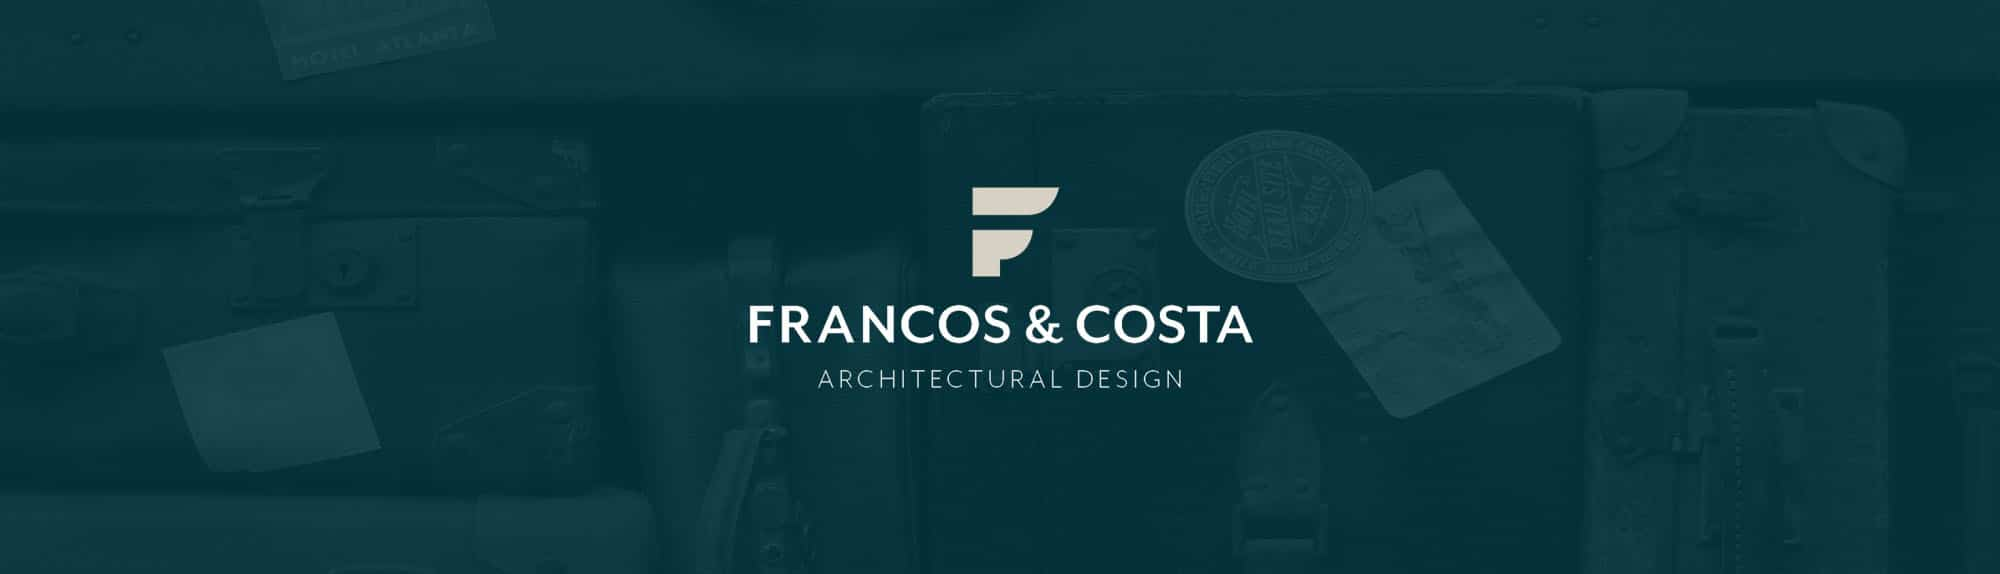 blog-image-francos-and-costa-architectural-visualisation-agency